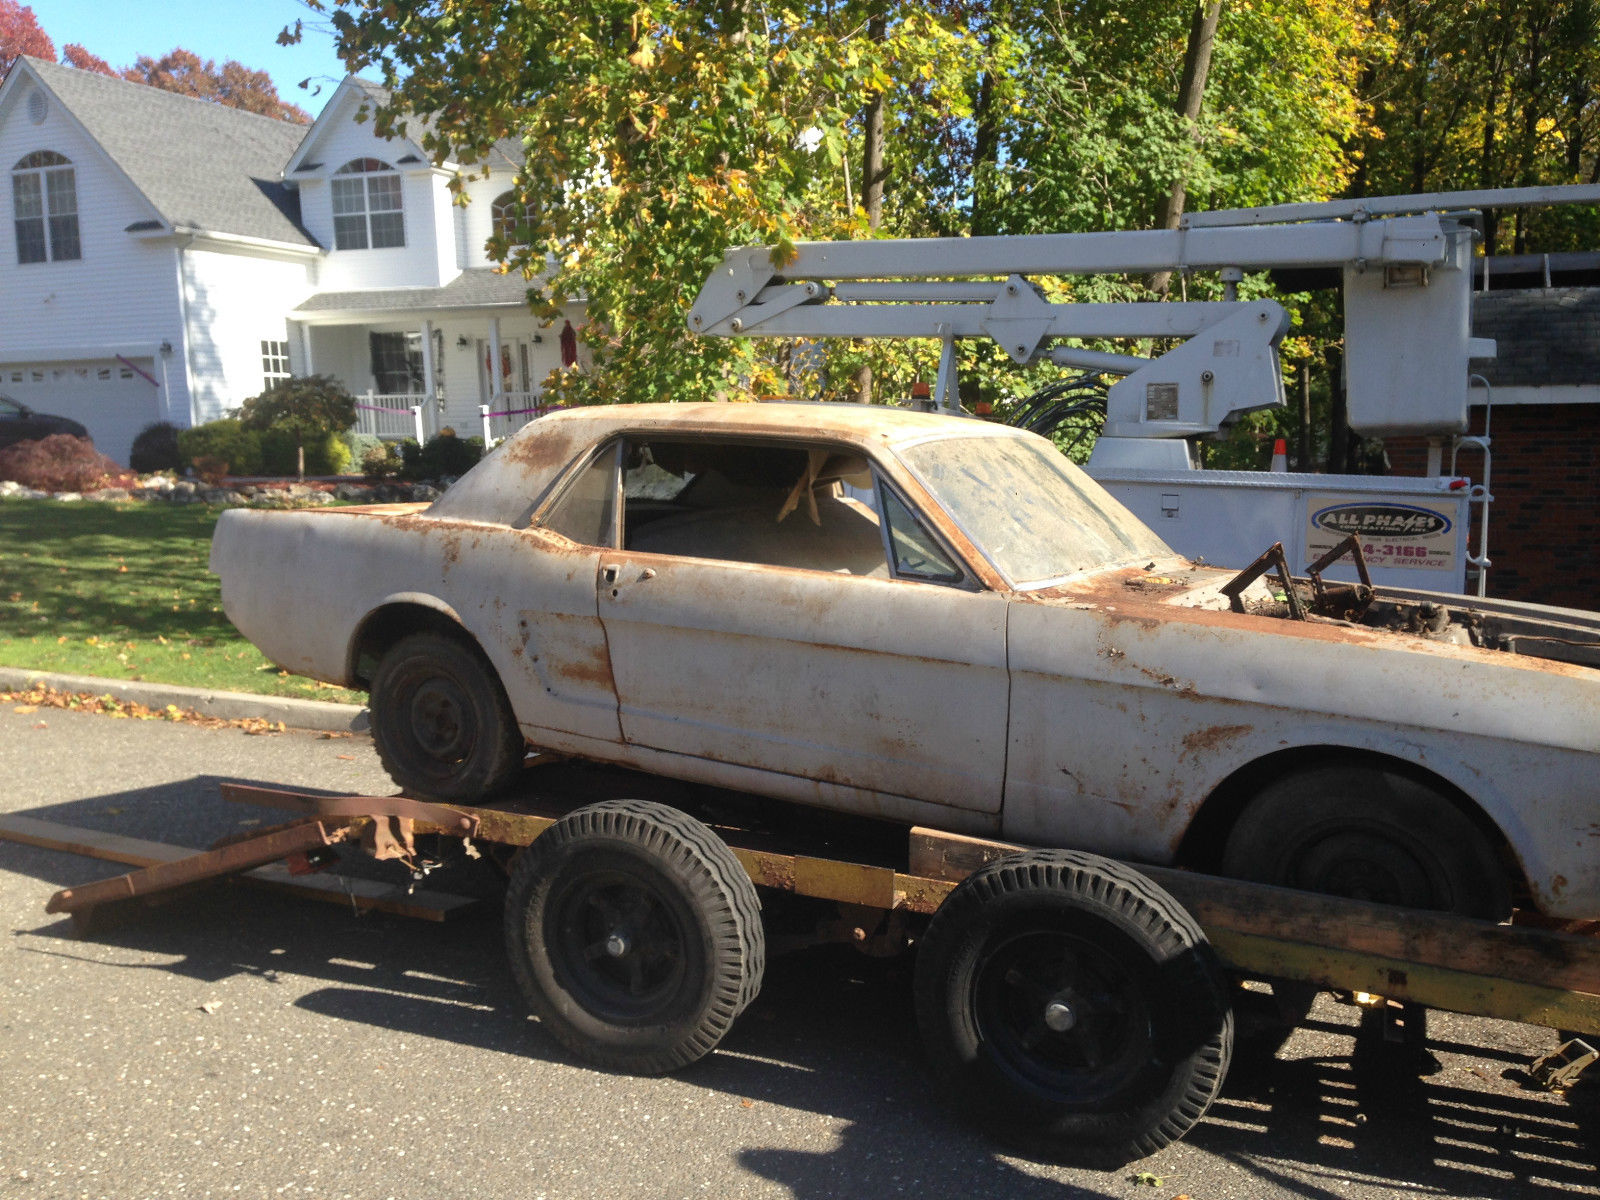 Mustang Parts For Sale >> 1964 Ford Mustang Parts 6 Cylinder Interior Exterior Parts